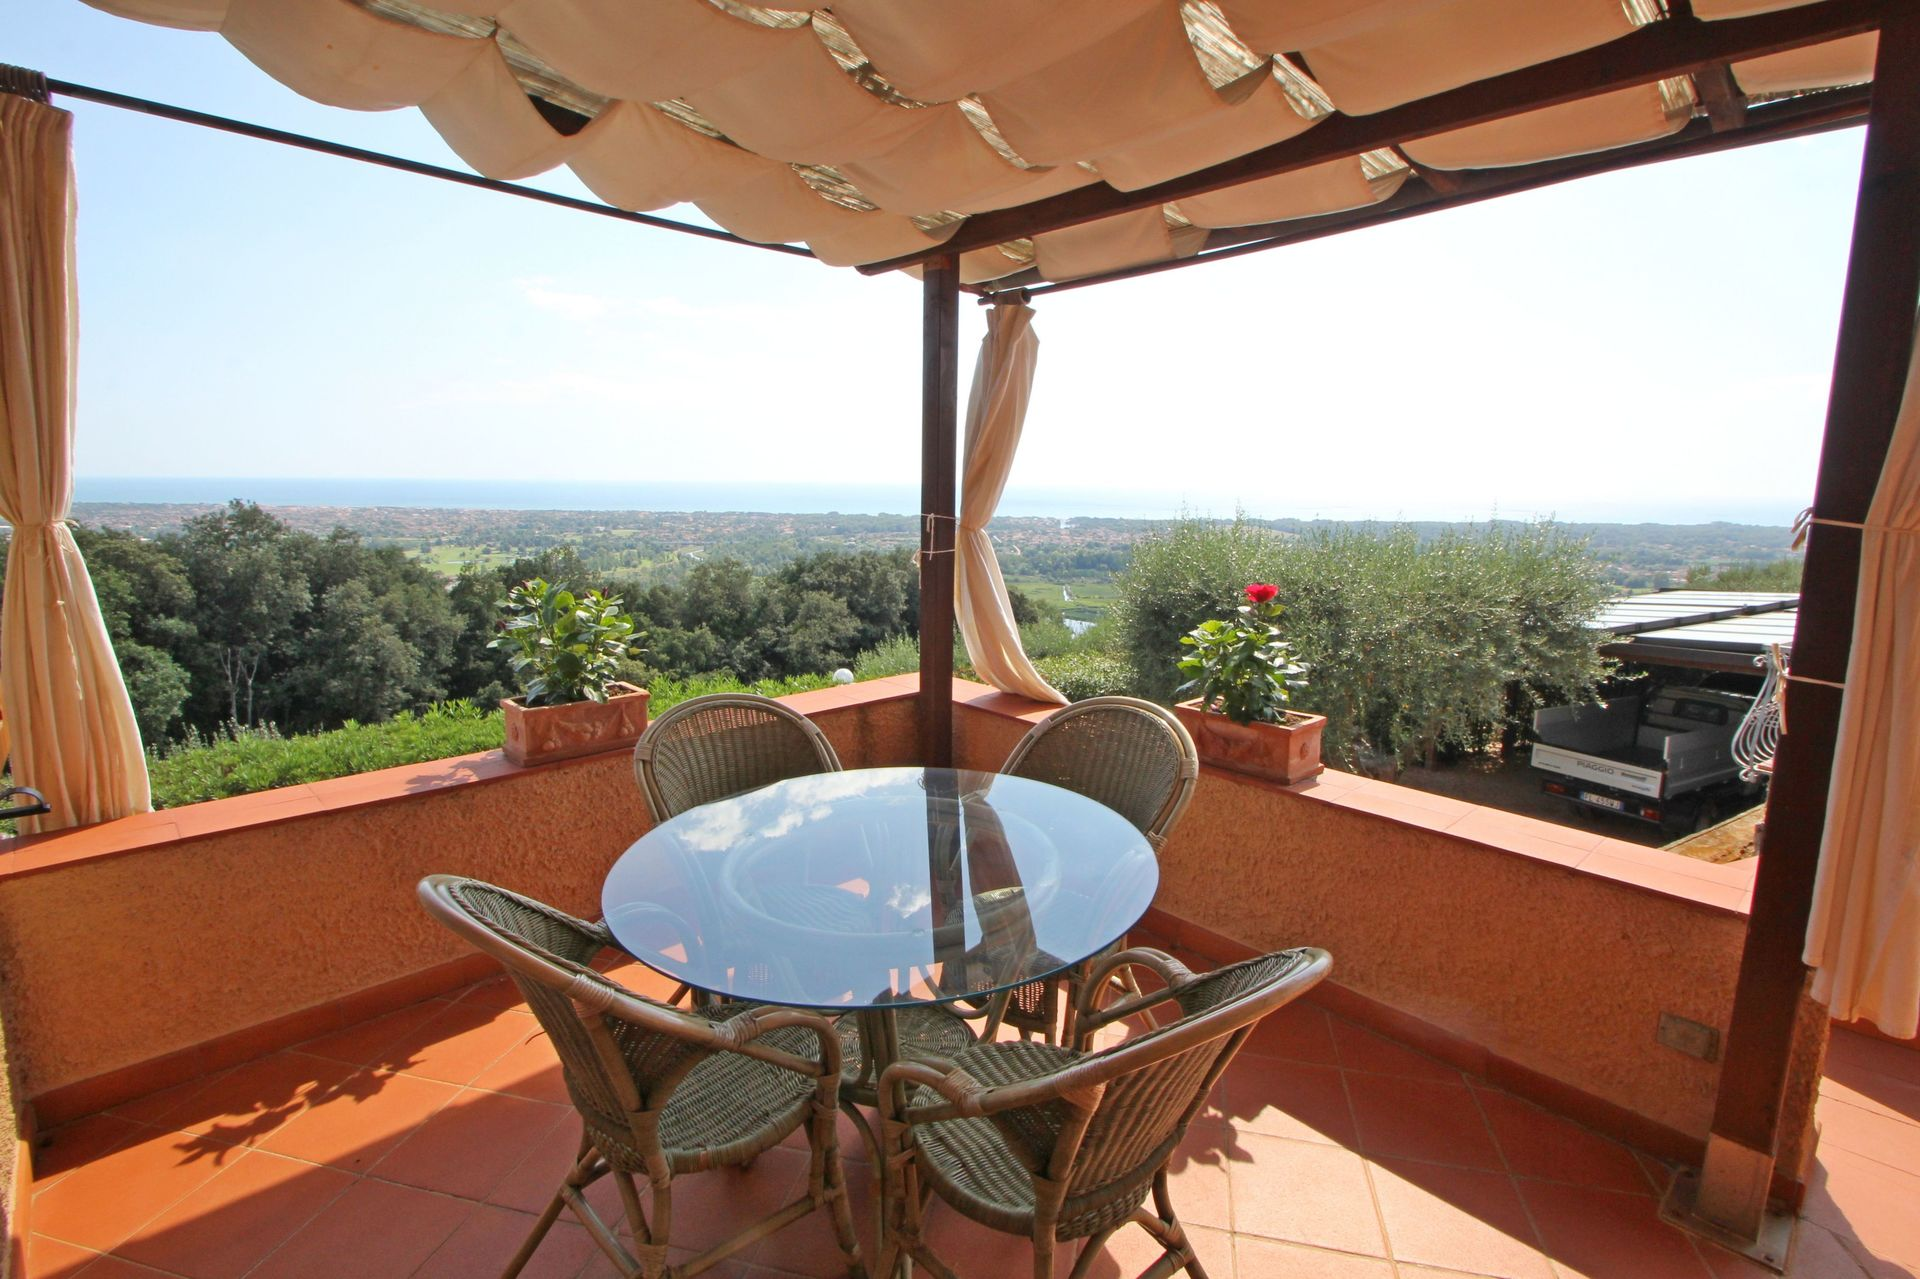 Strettoia Villa Vacation Rental Terrazza Sul Mare that sleeps 8 people in 4 bedrooms located in